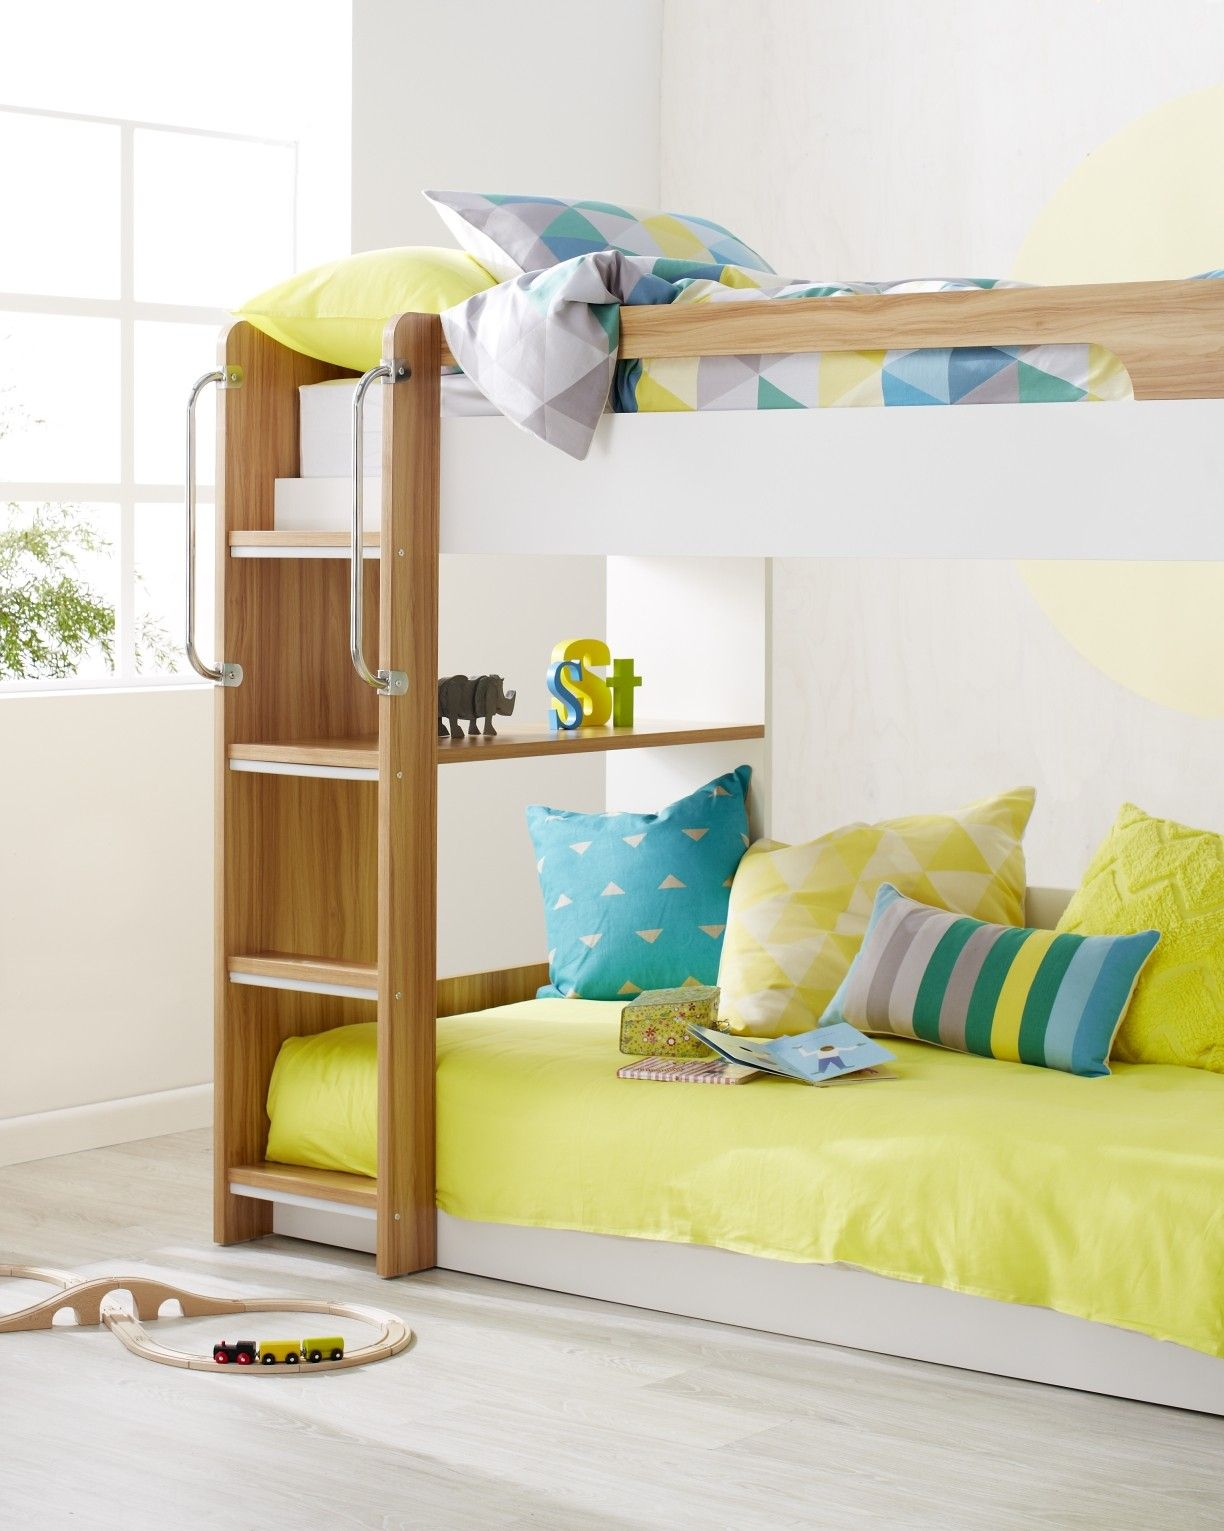 Saturn Bunk Bed Mercury Bunk 999 From Forty Winks I Like The Sense Of Openness